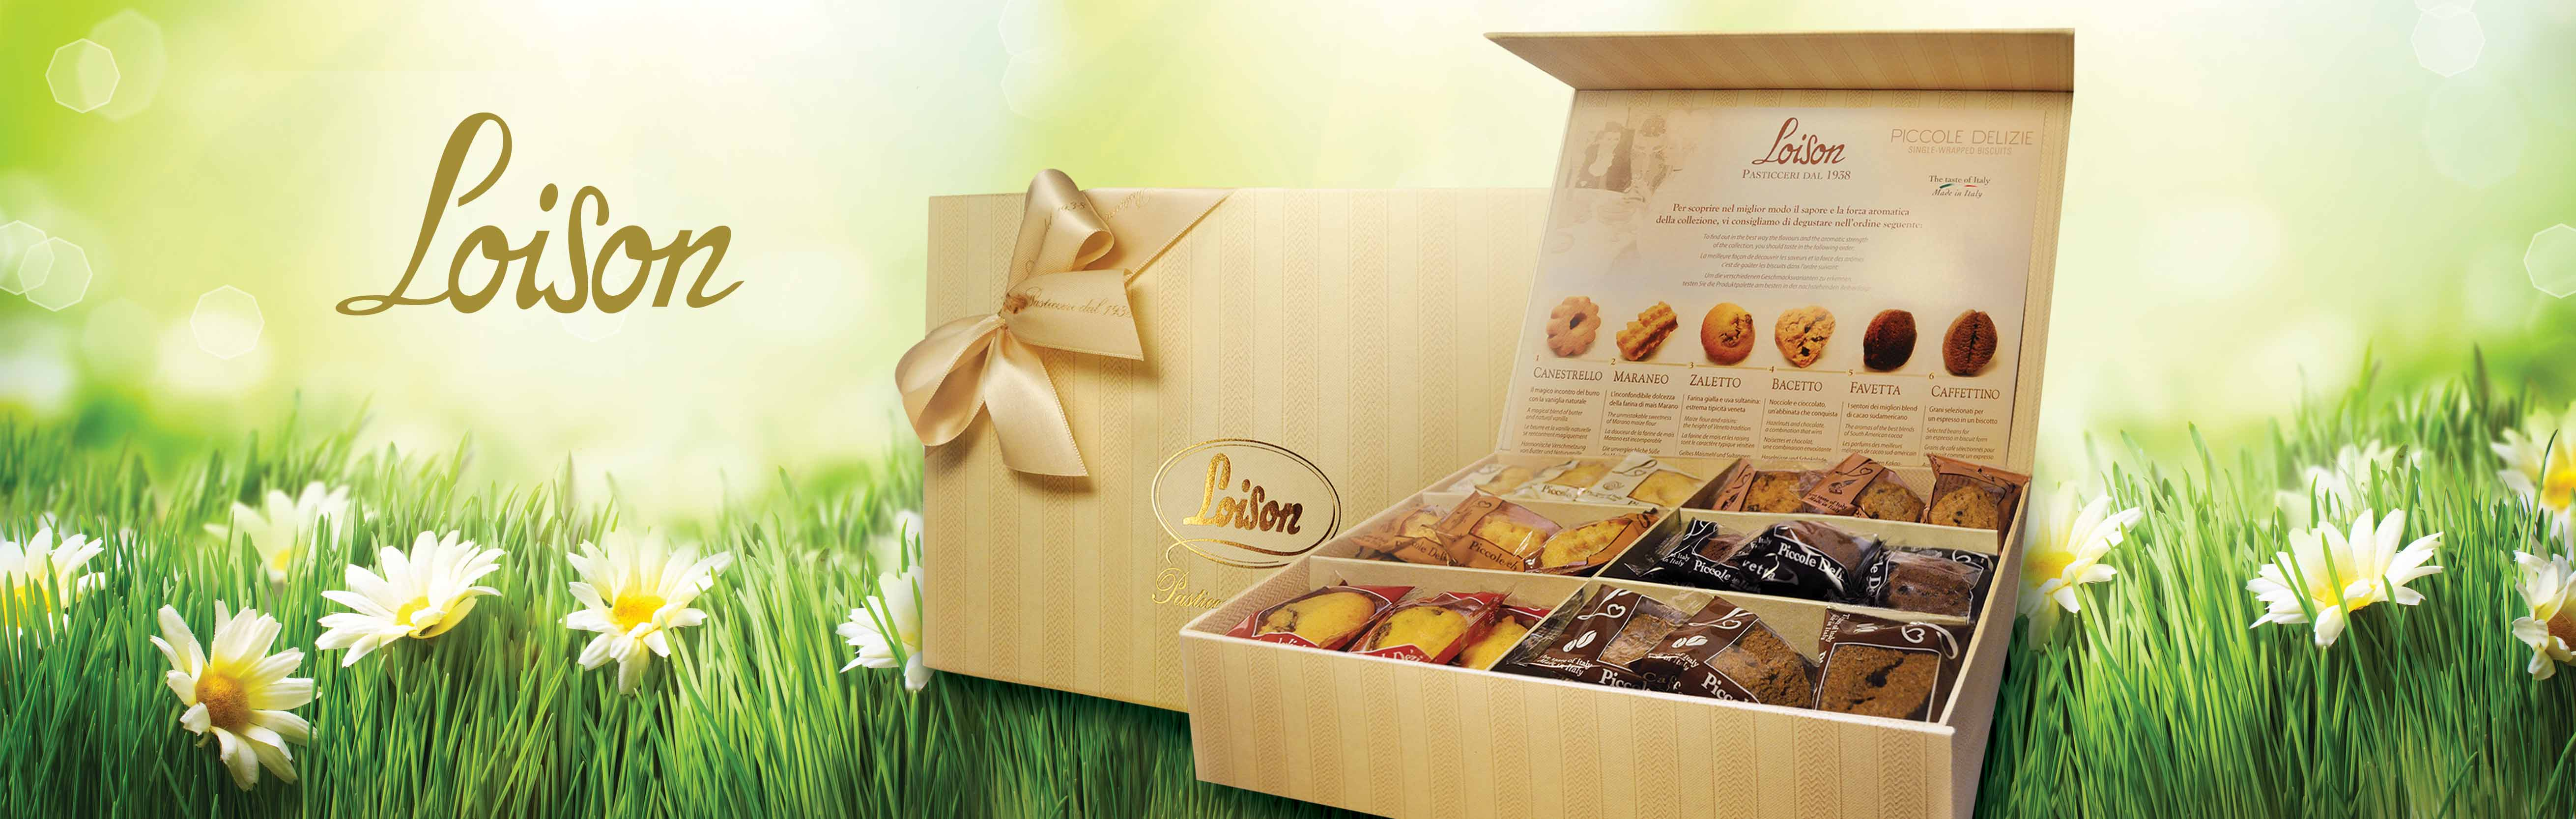 EasterBanner-Loison-cookies-v2